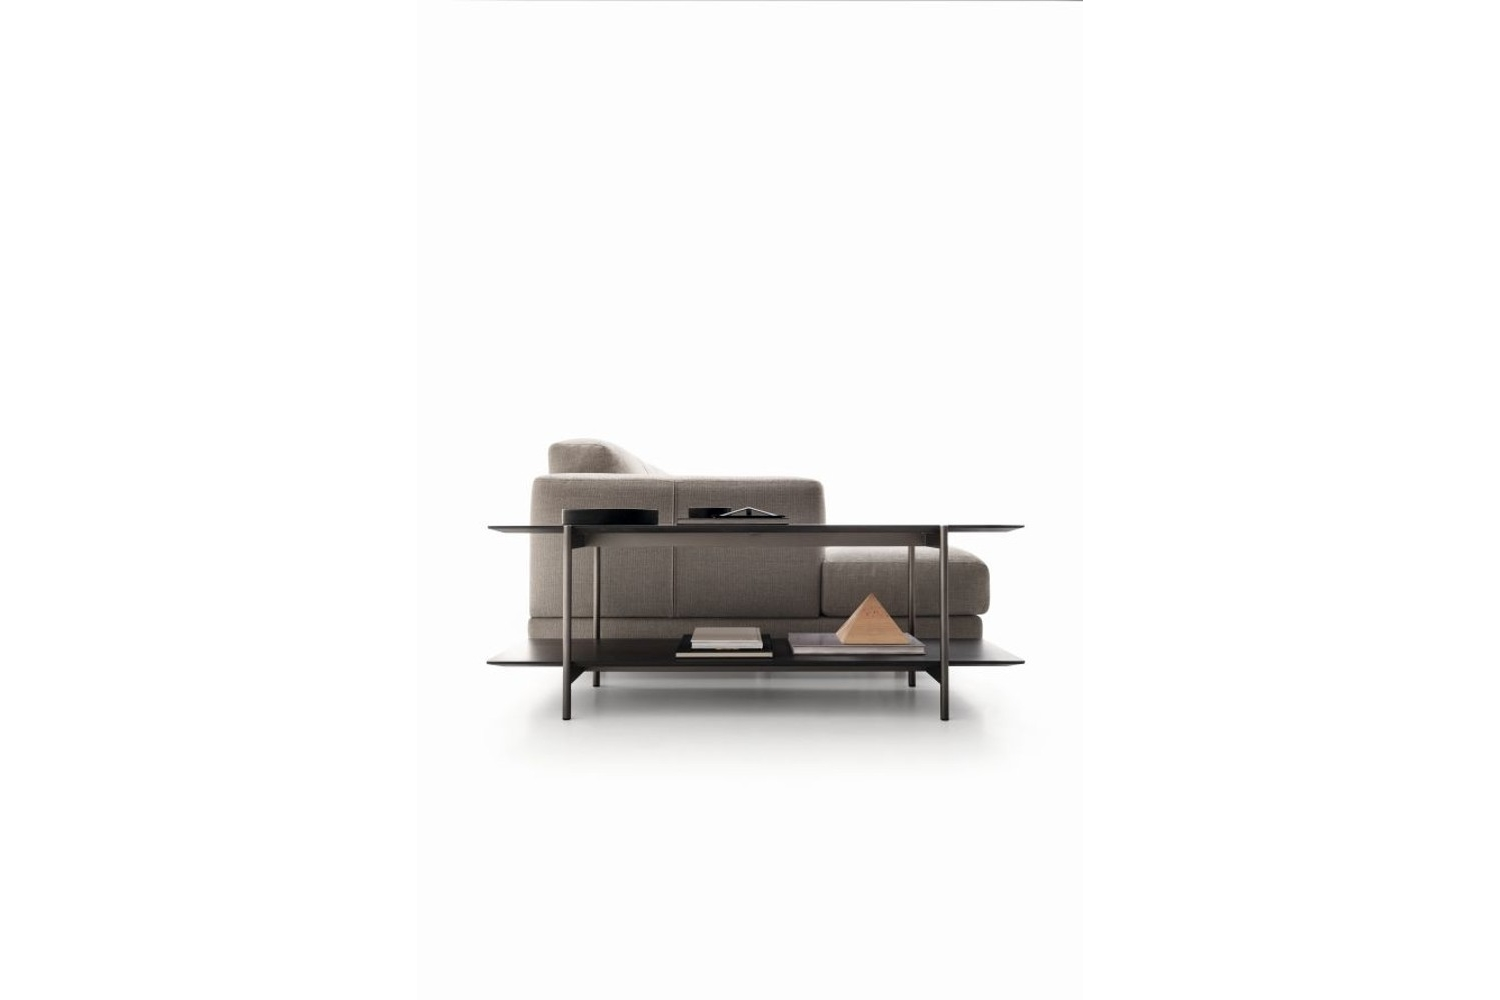 Nevill panca dal basso senza cuscino.jpg Nevyll sofa_Made by Ditre Italia_In Italy_Low back and High back options_ Fabric and Leather Upholstery Nevill panca dal basso senza cuscino.jpg